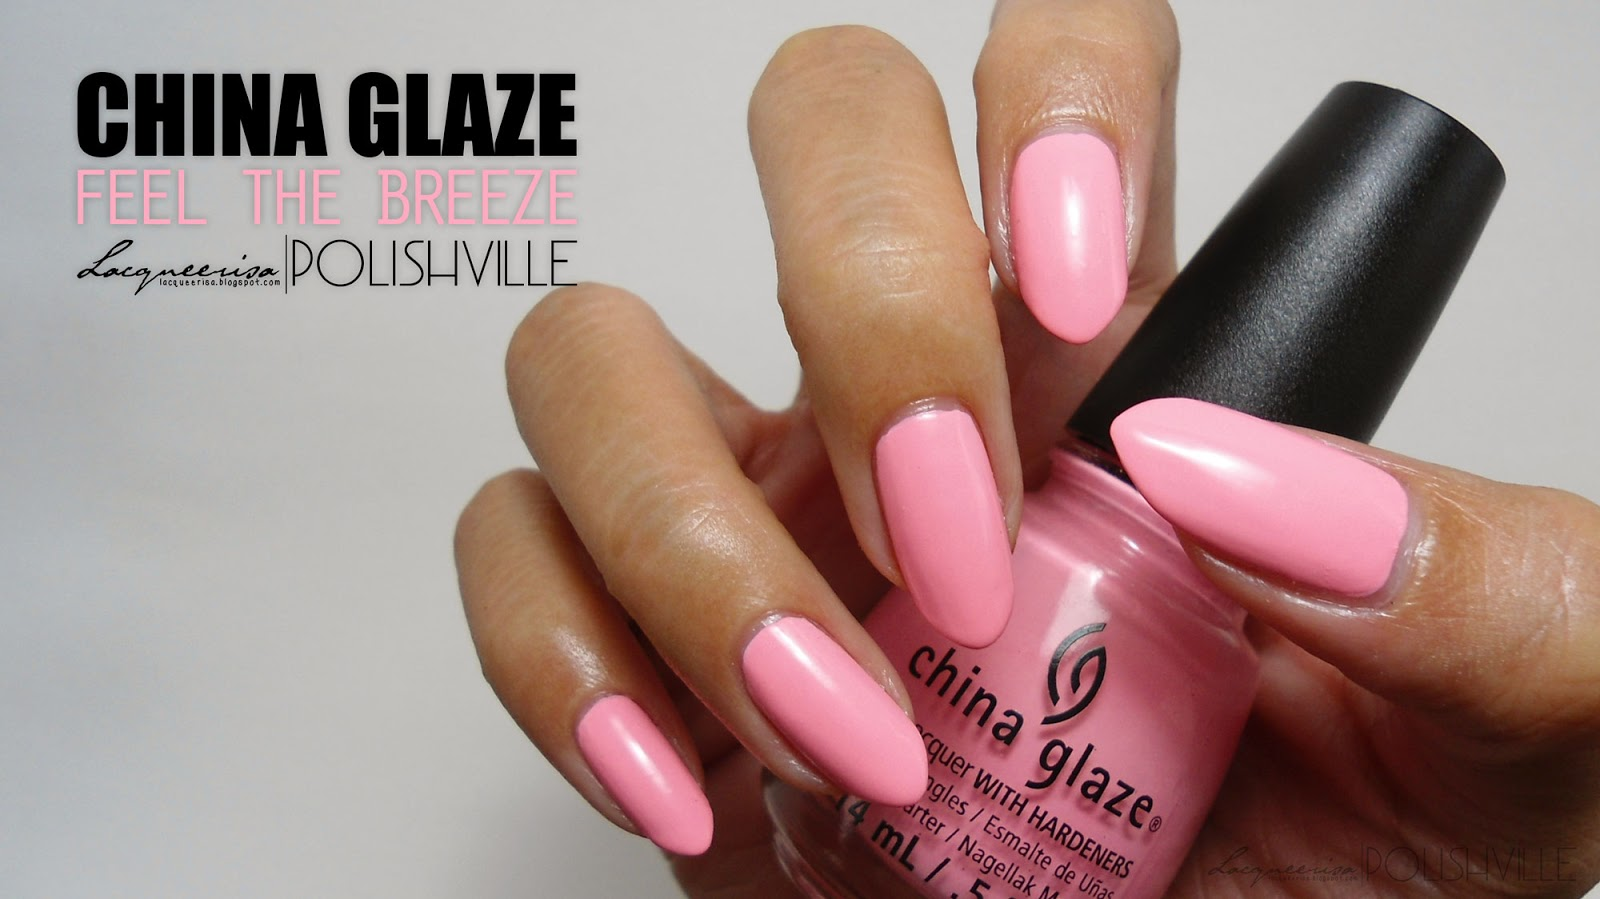 LacqueerisaXPolishville: China Glaze, Feel The Breeze